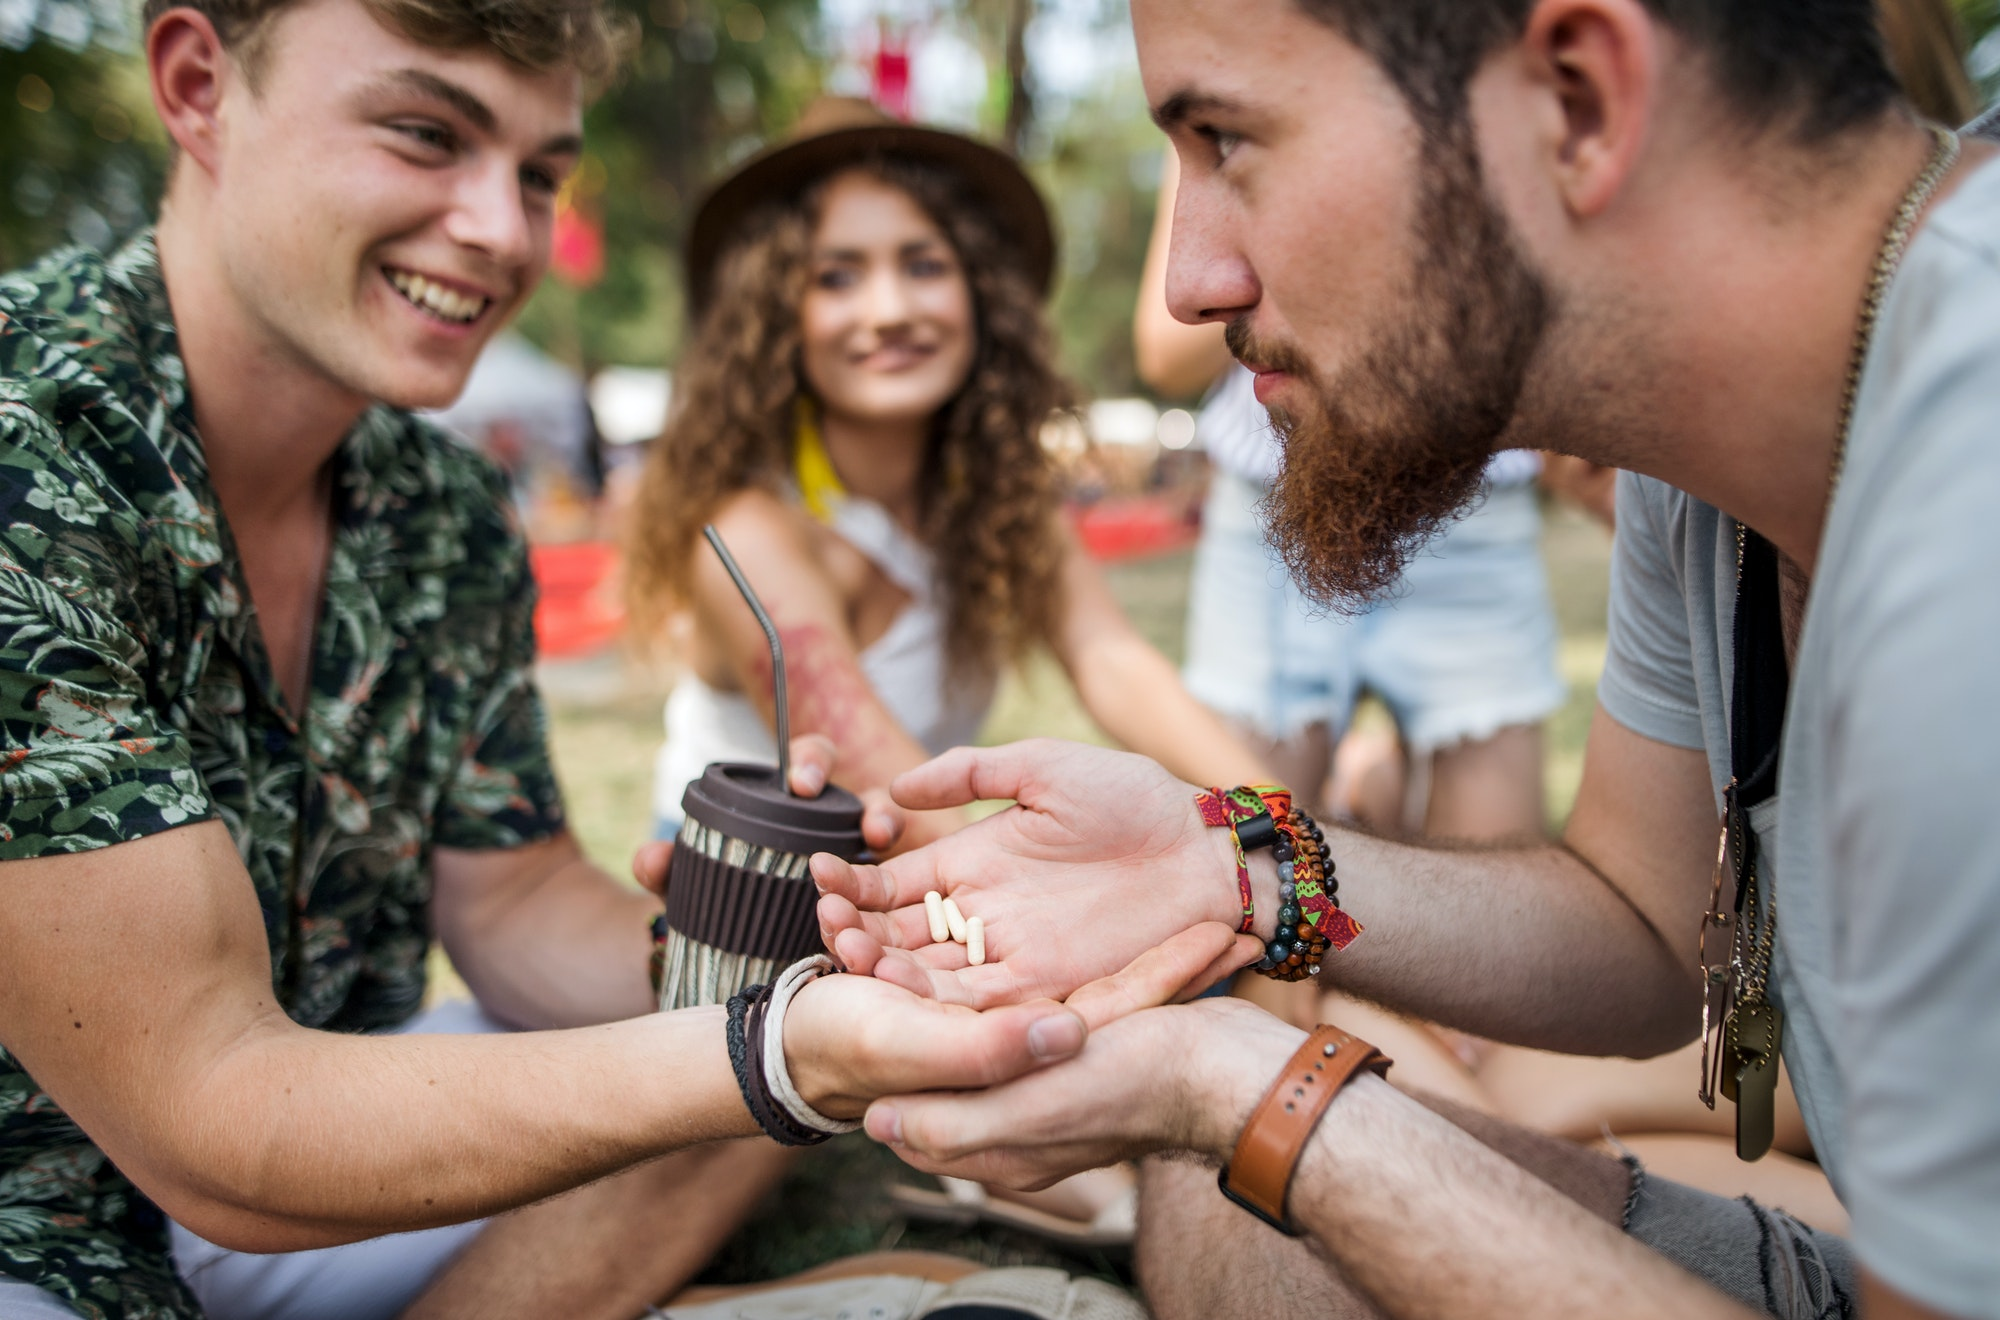 Group of young friends at summer festival, drug dealing concept